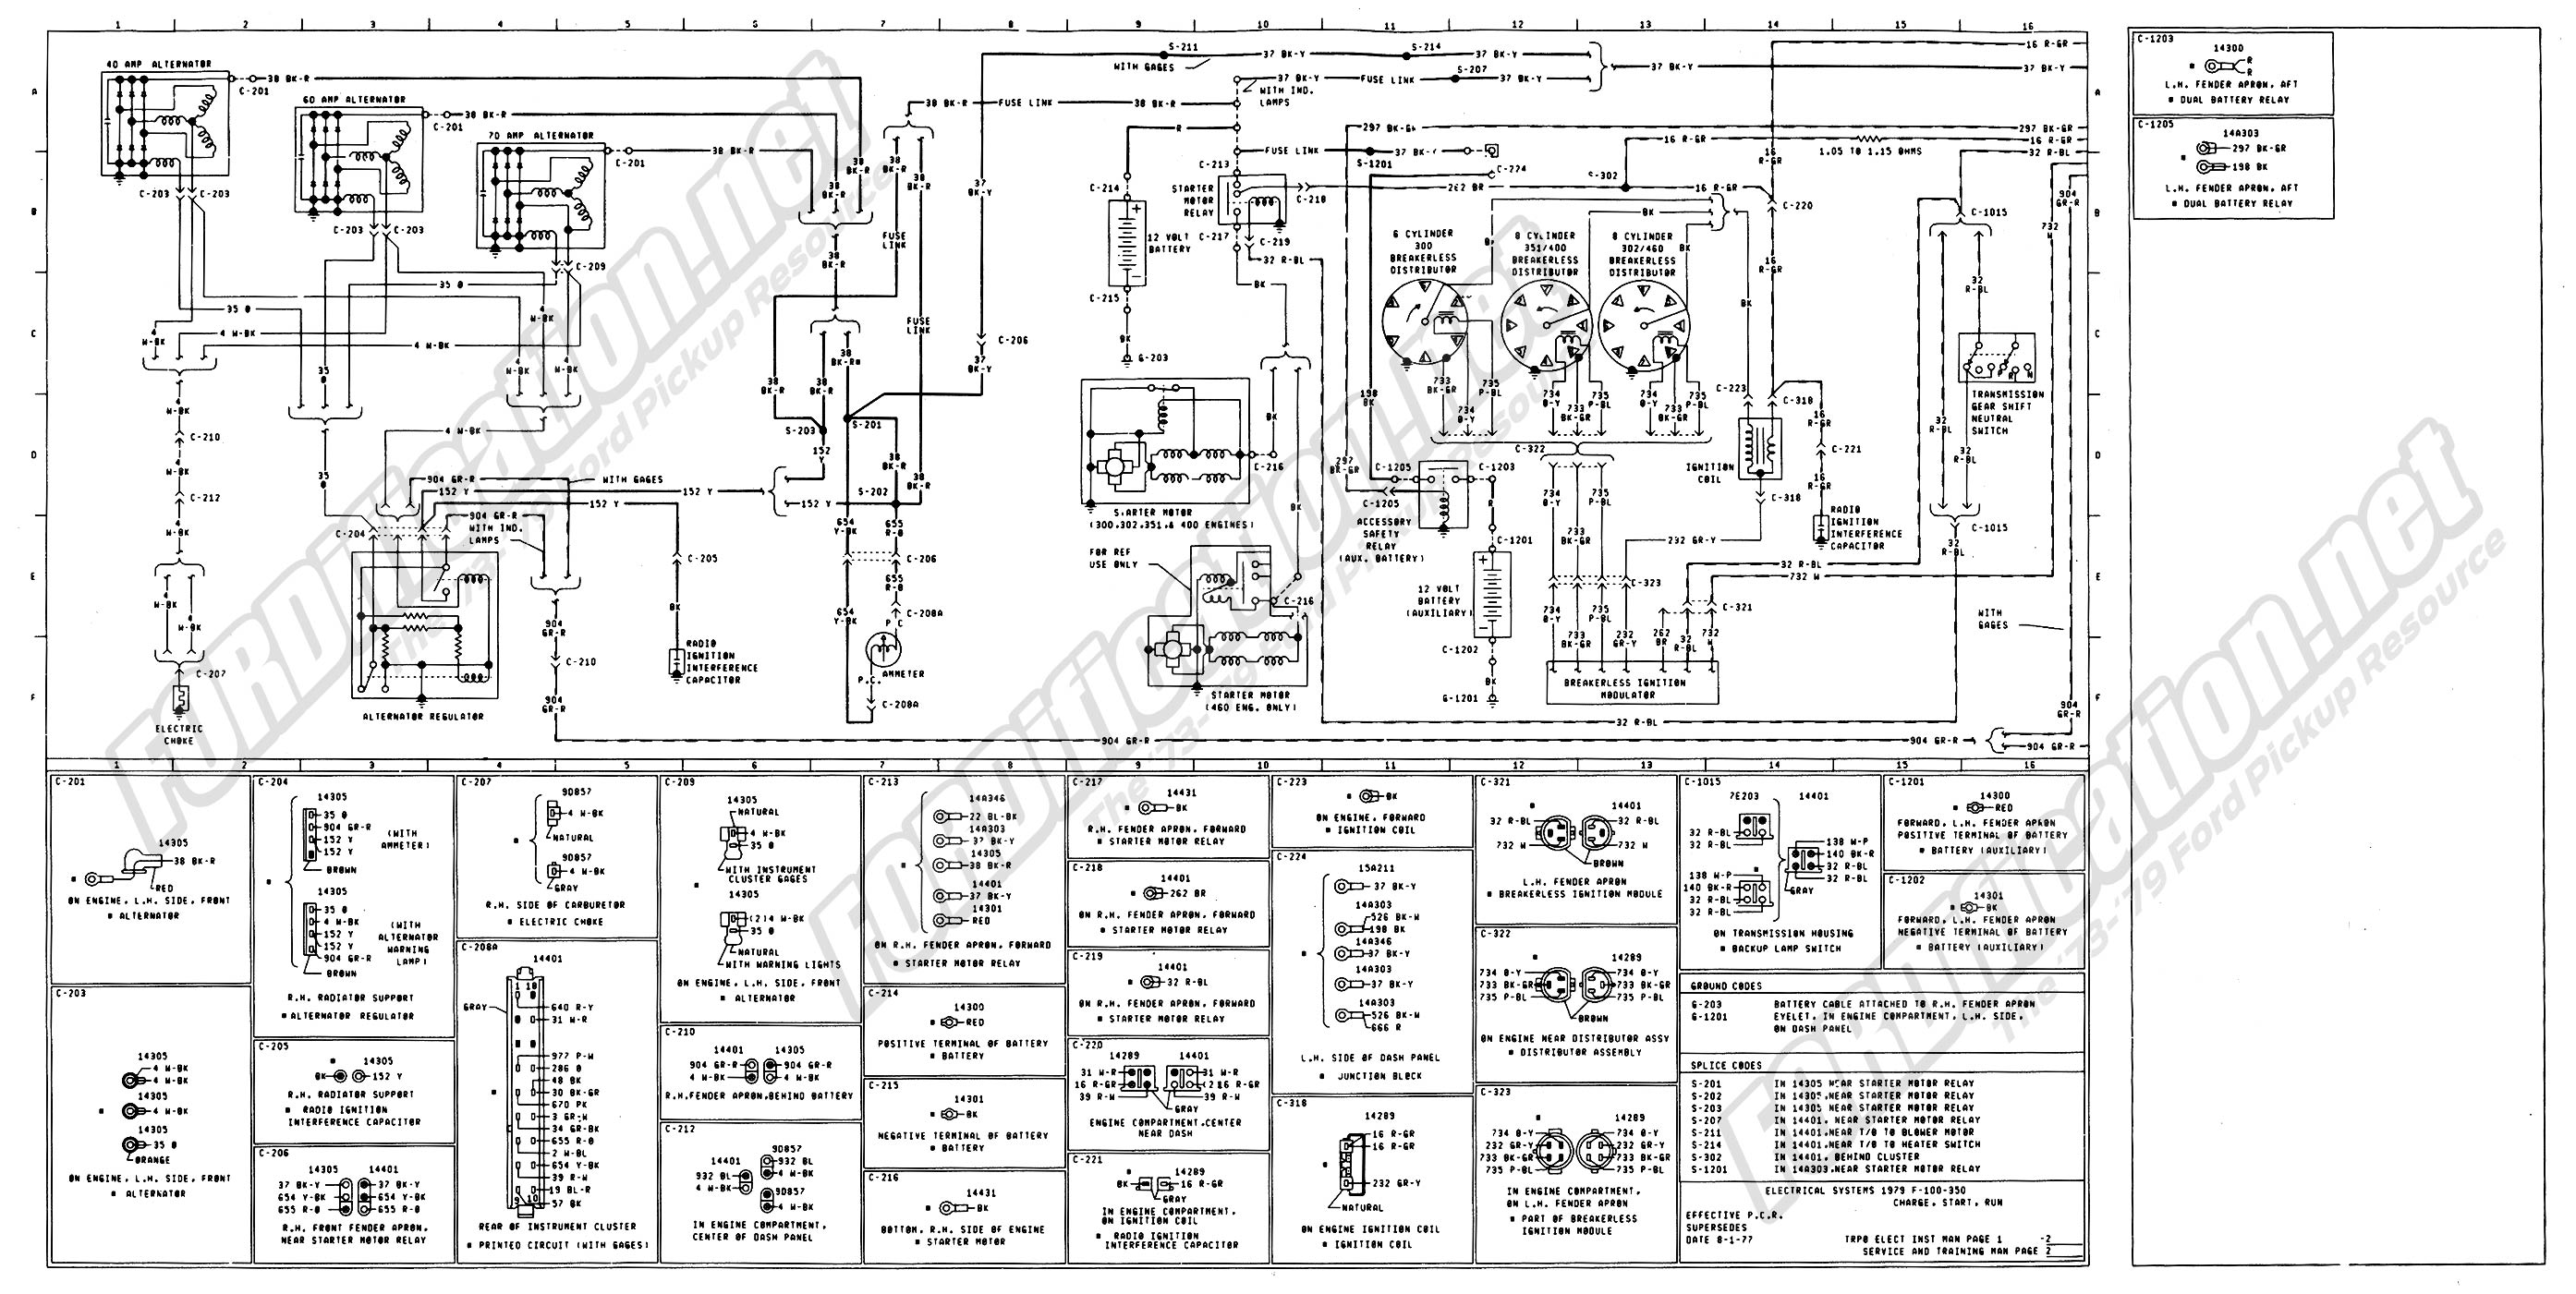 wiring_79master_2of9 1979 ford f150 wiring diagram 1979 ford f150 fuse diagram \u2022 wiring ford truck wiring diagrams free at readyjetset.co